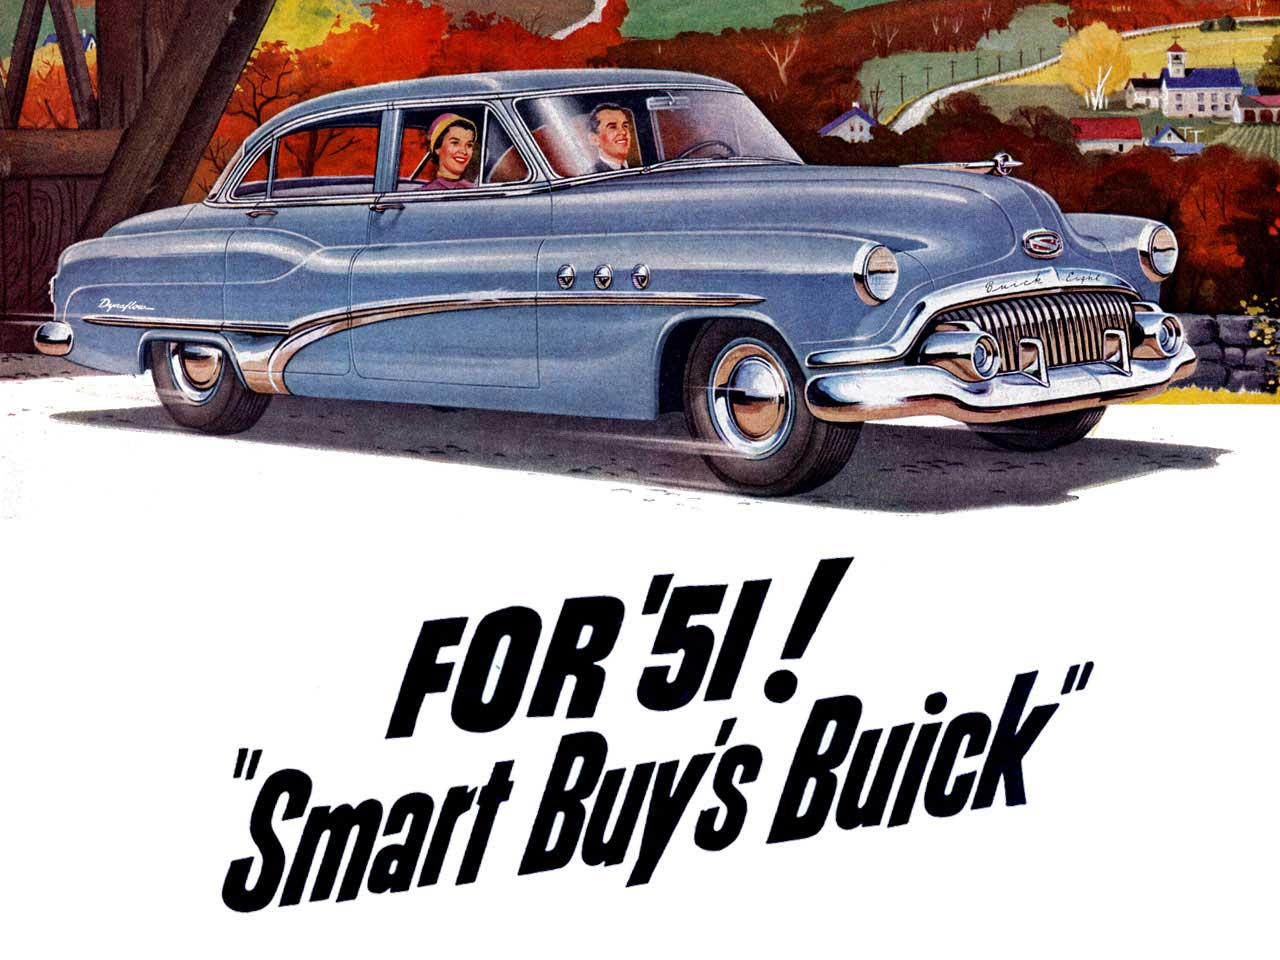 1951 Buick - For 51 Smart Buys Buick